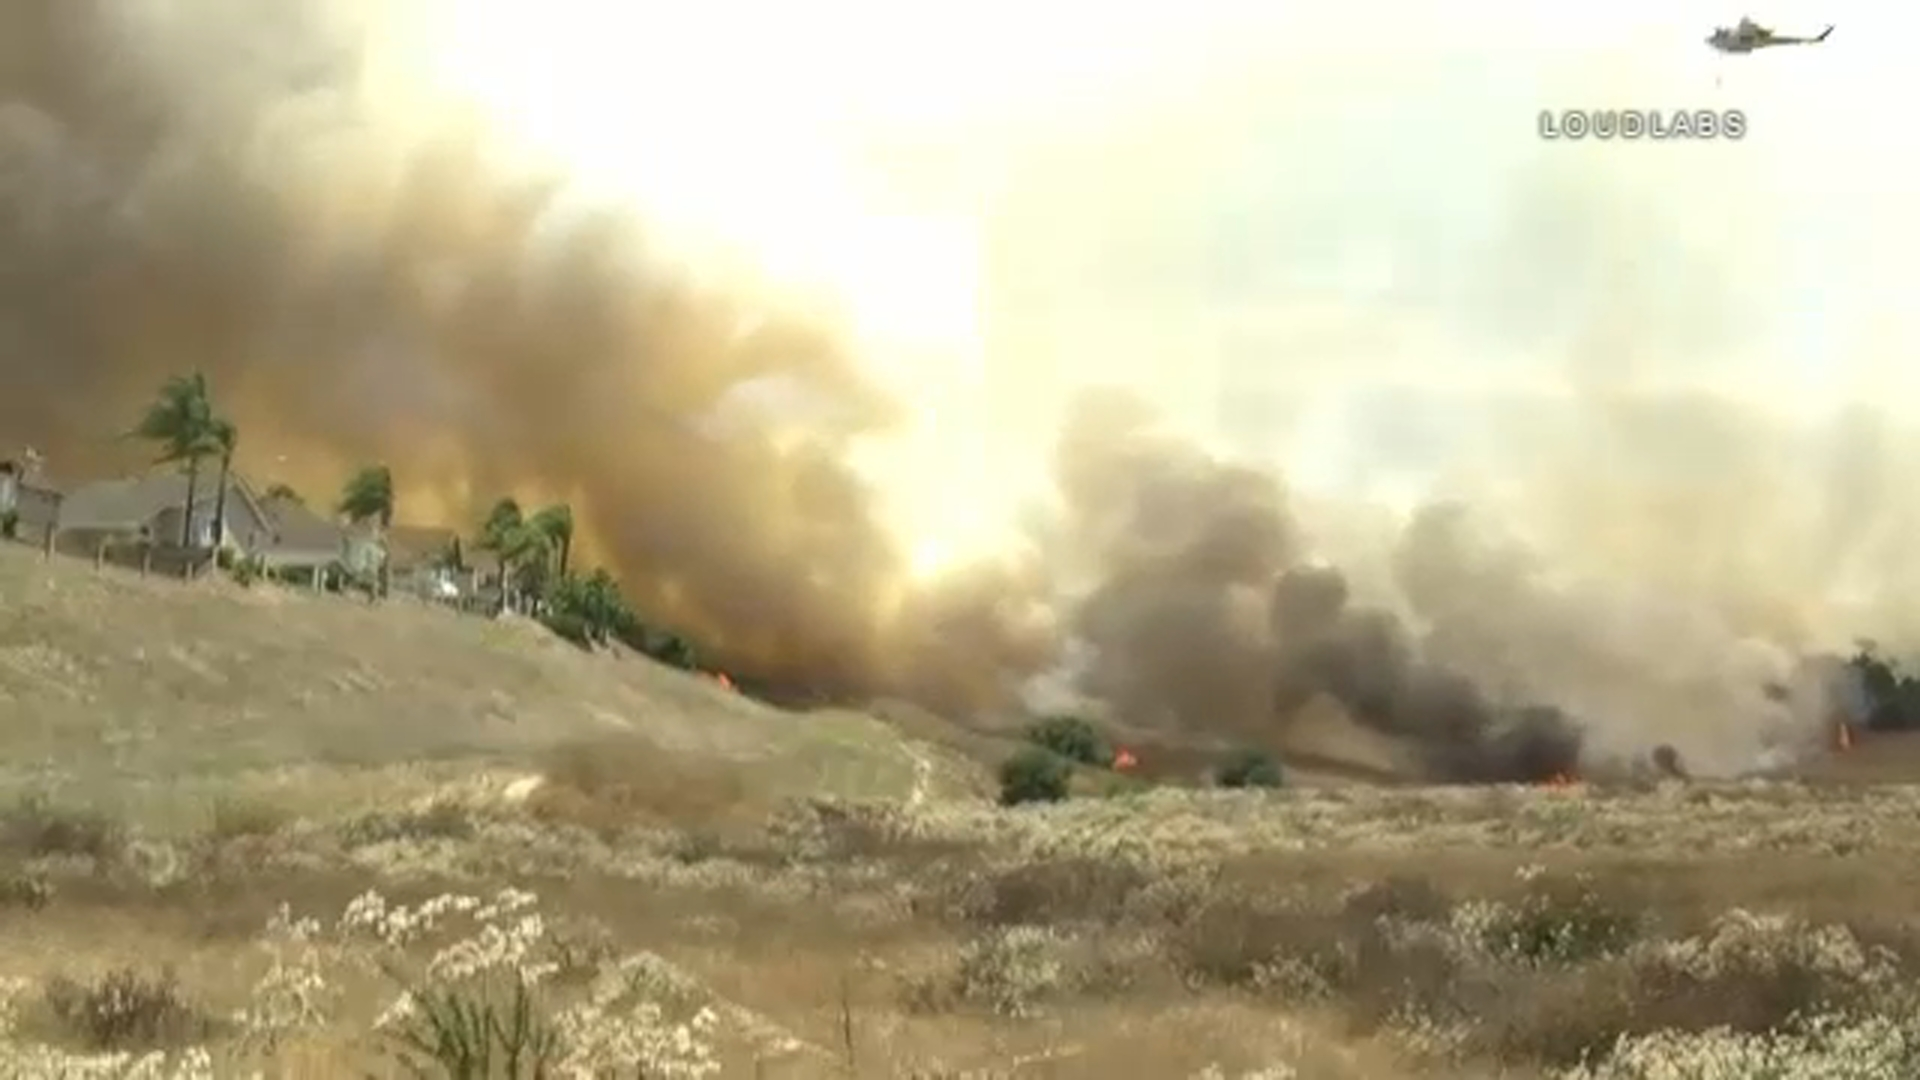 A multi-acre brush fire was burning in Chino Hills Sunday afternoon, possibly threatening nearby homes.